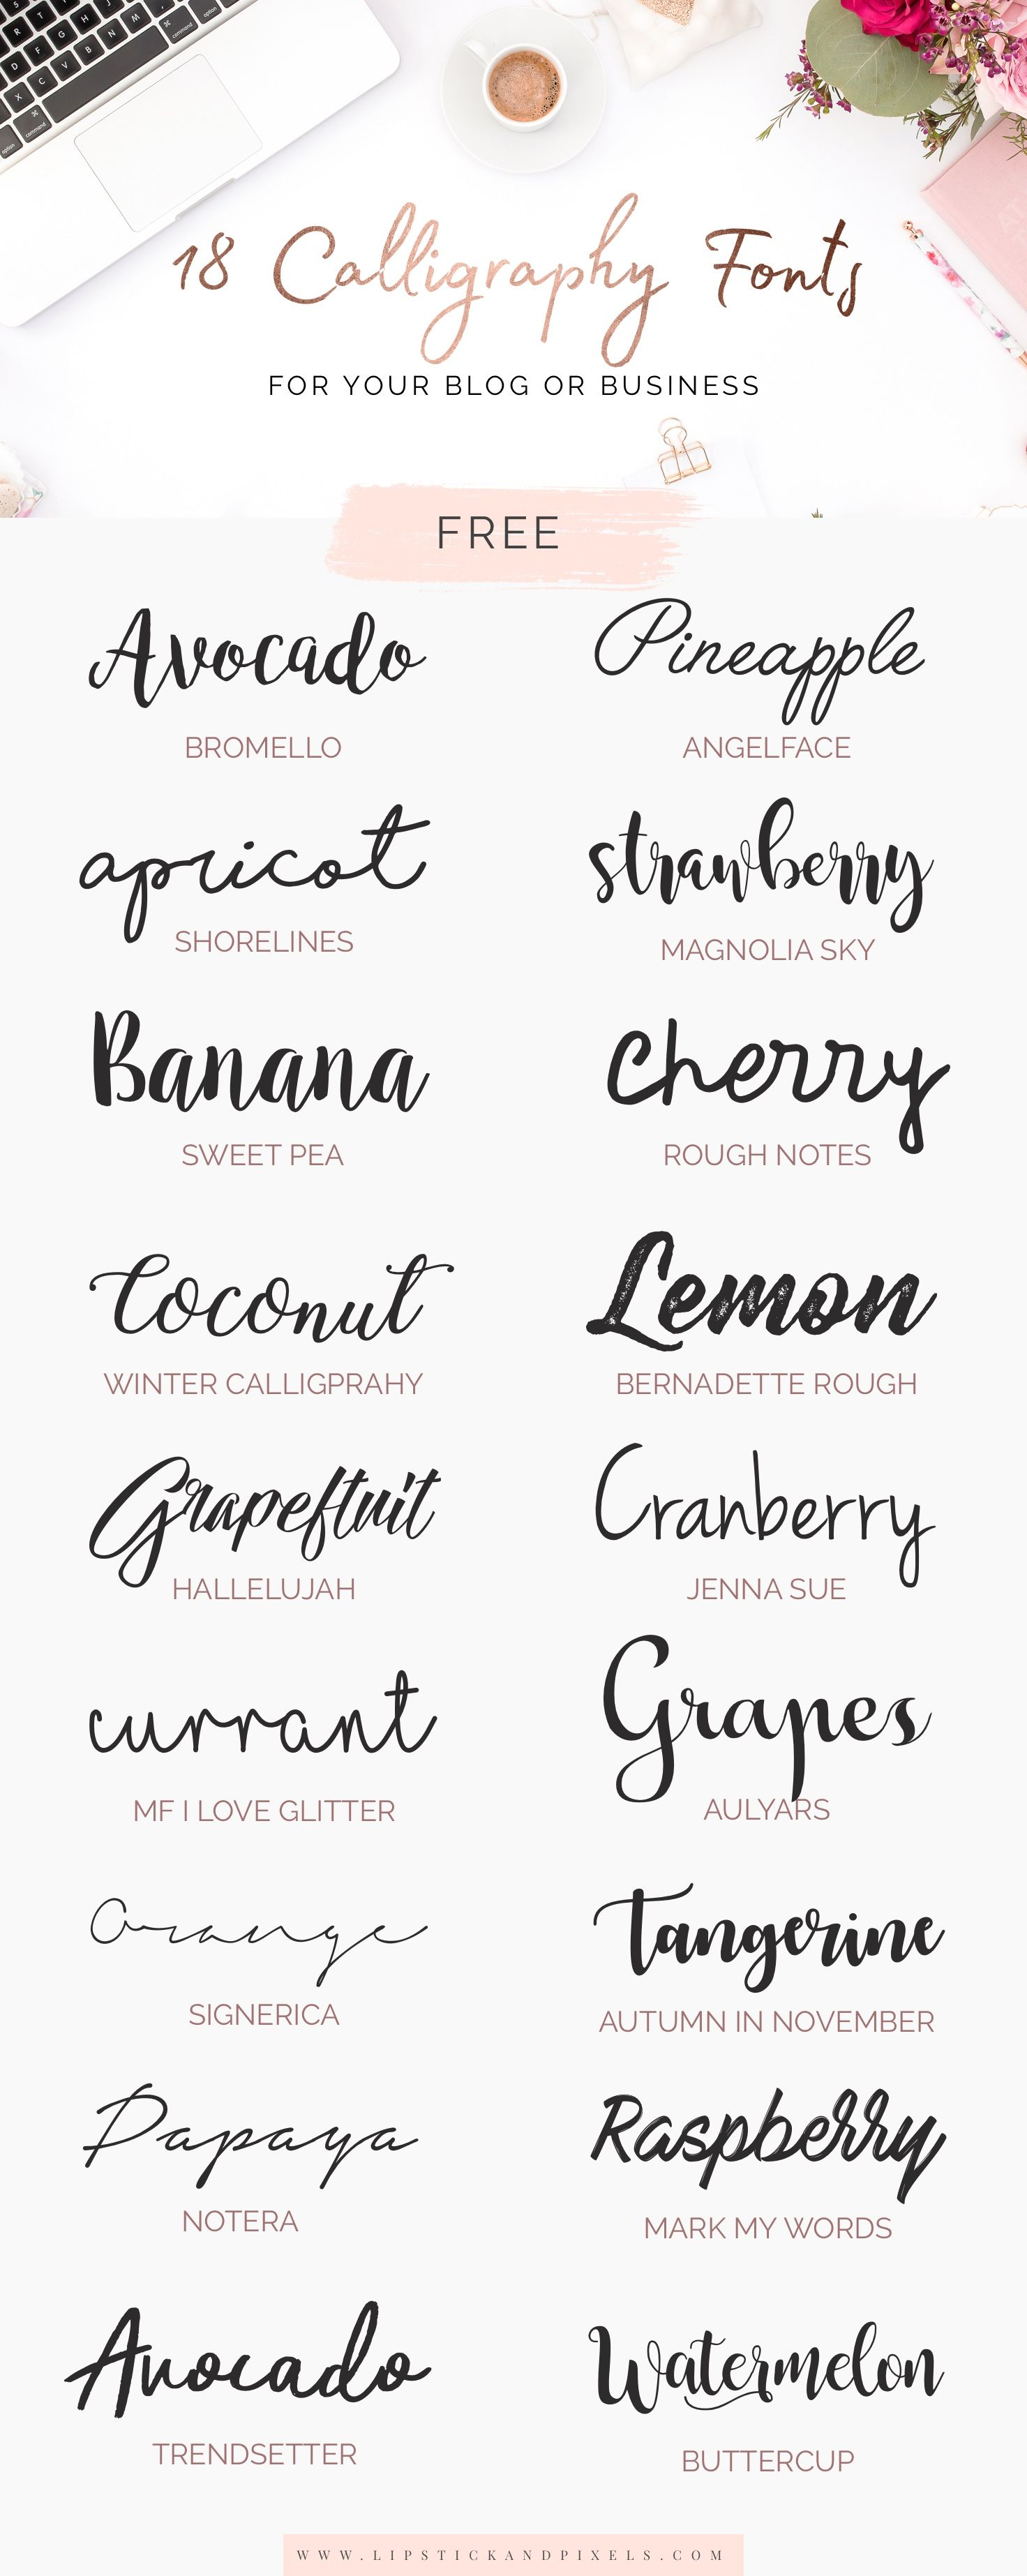 18 free calligraphy fonts for your blog or business Pinterest calligraphy